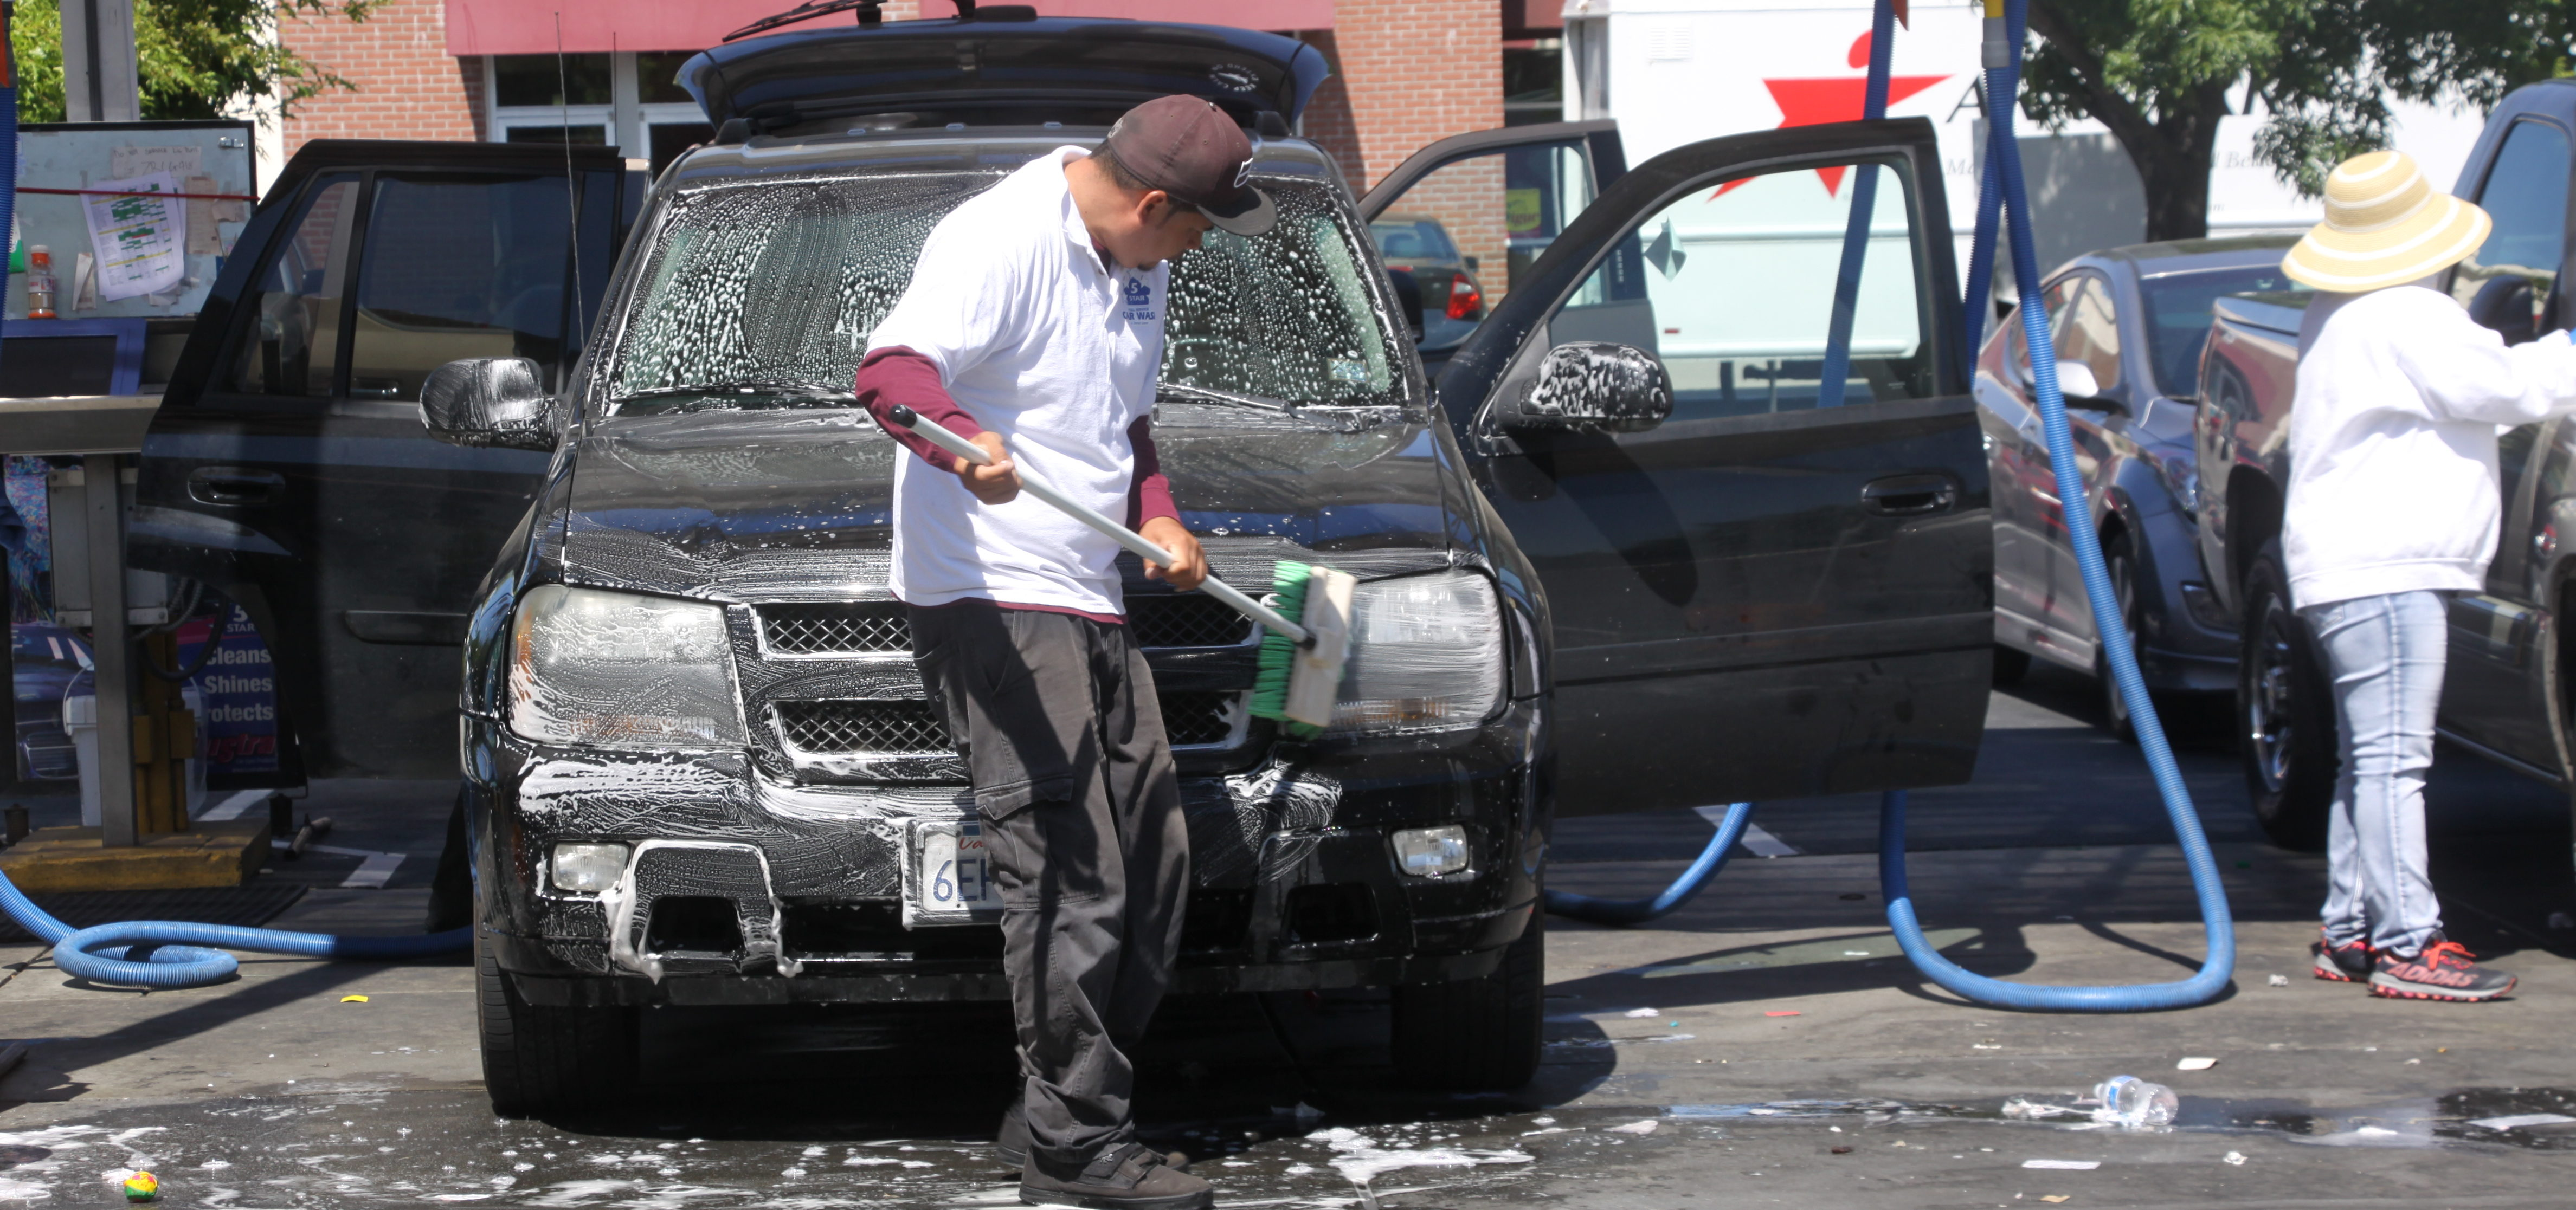 5 star car wash and detail center location premium service solutioingenieria Image collections